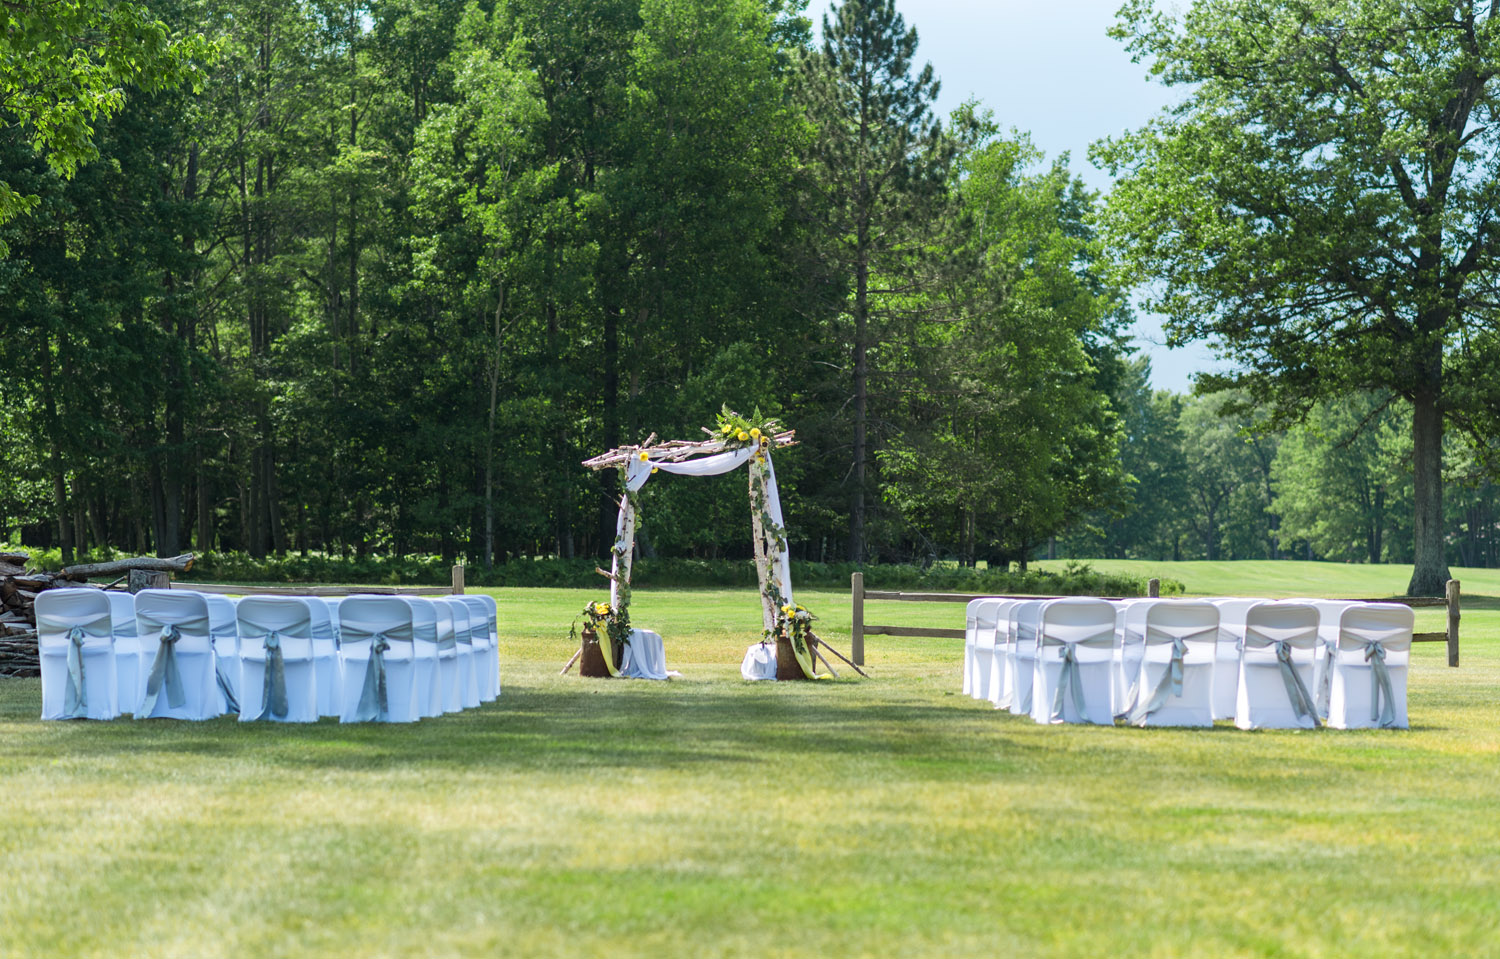 planning an outdoor wedding upper peninsula michigan